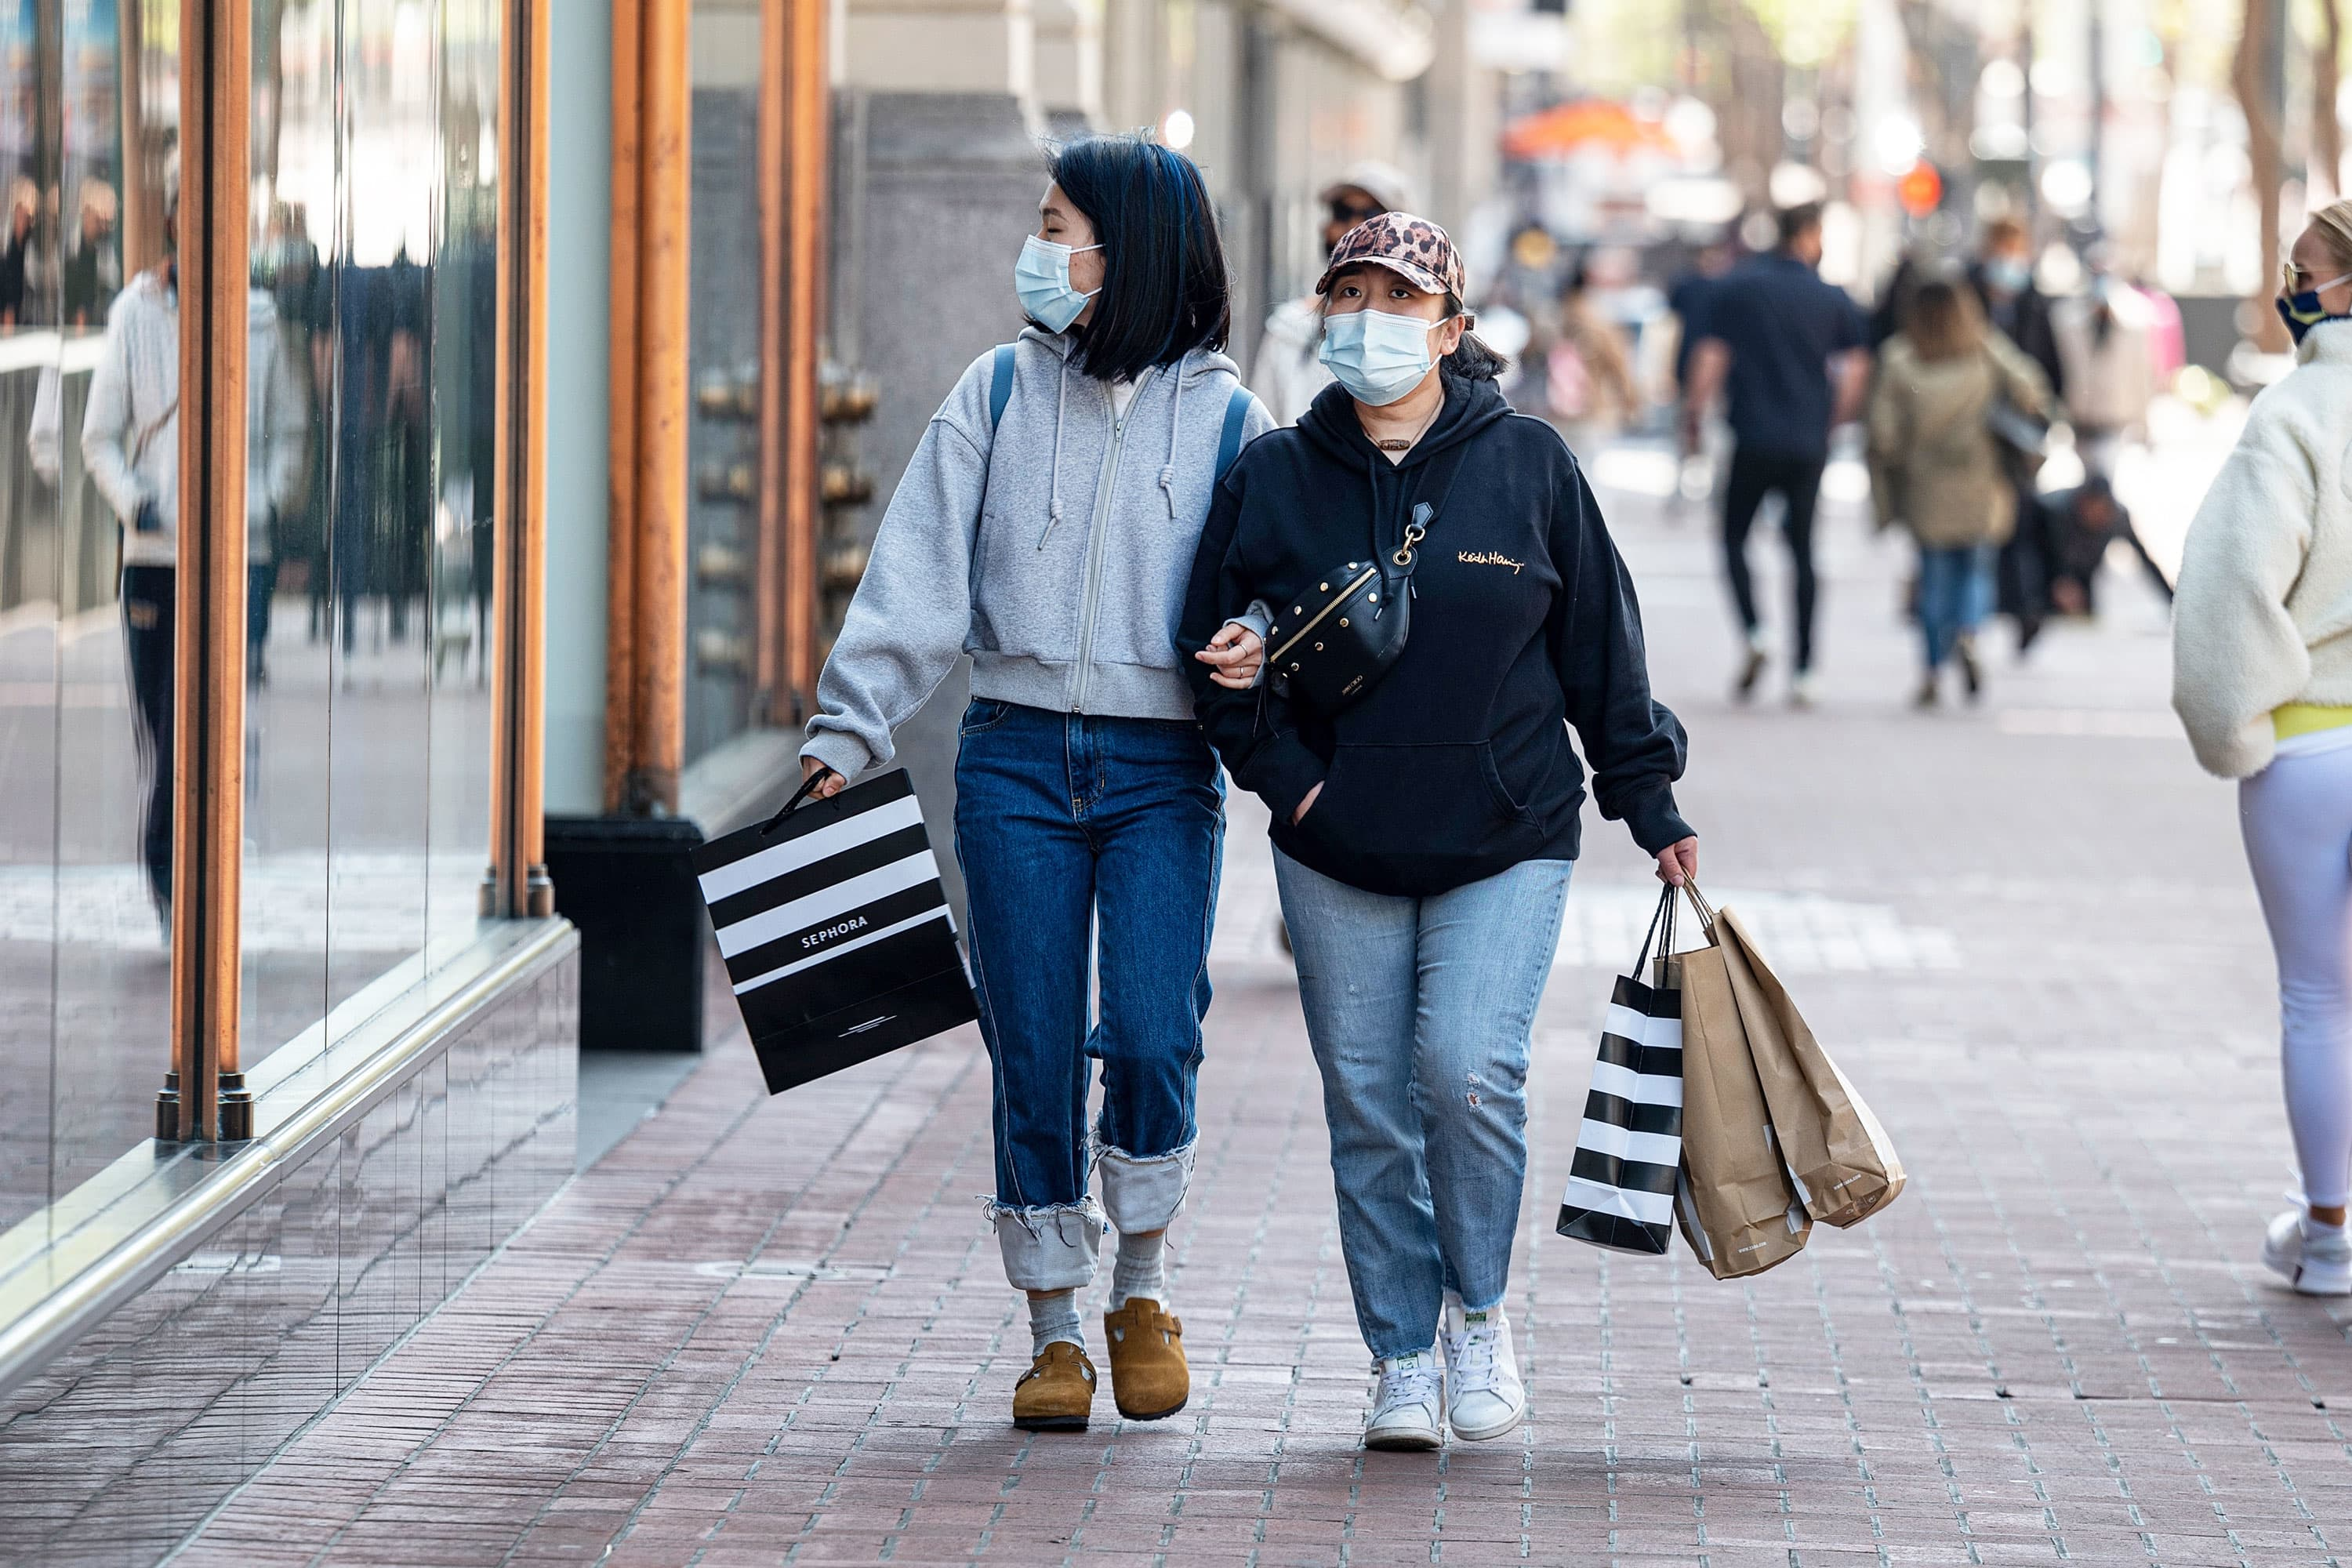 The post-pandemic spending spree begins: Here are 6 things Americans are buying